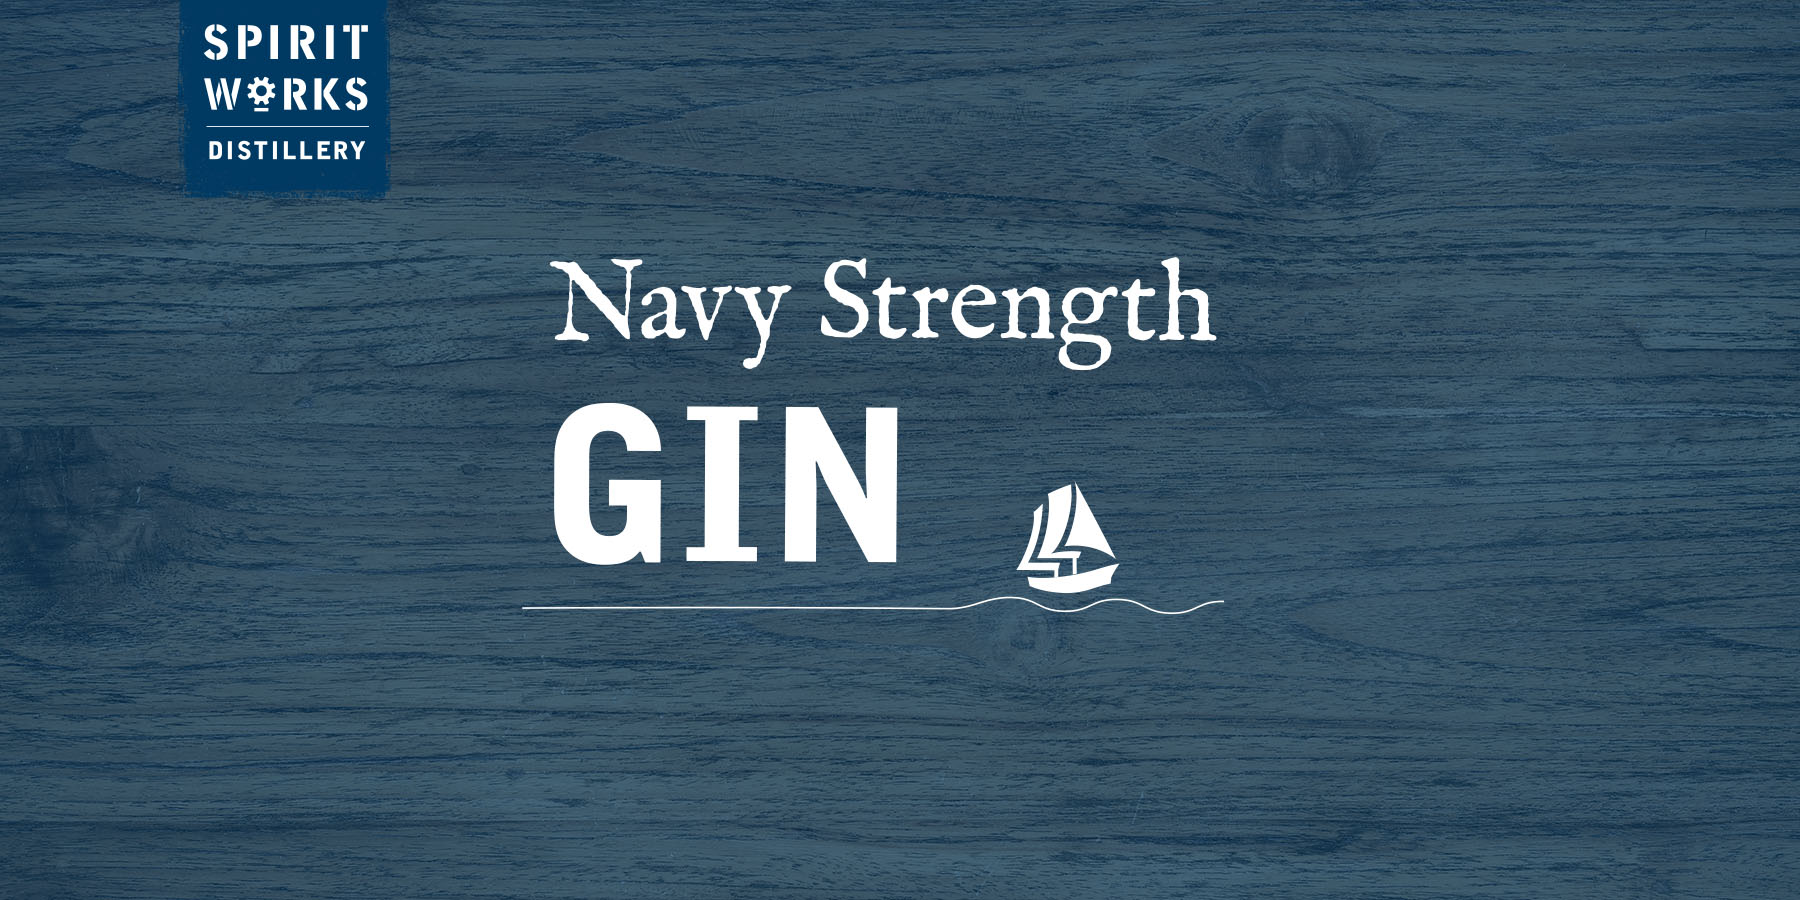 spirit-works-navy-gin-header